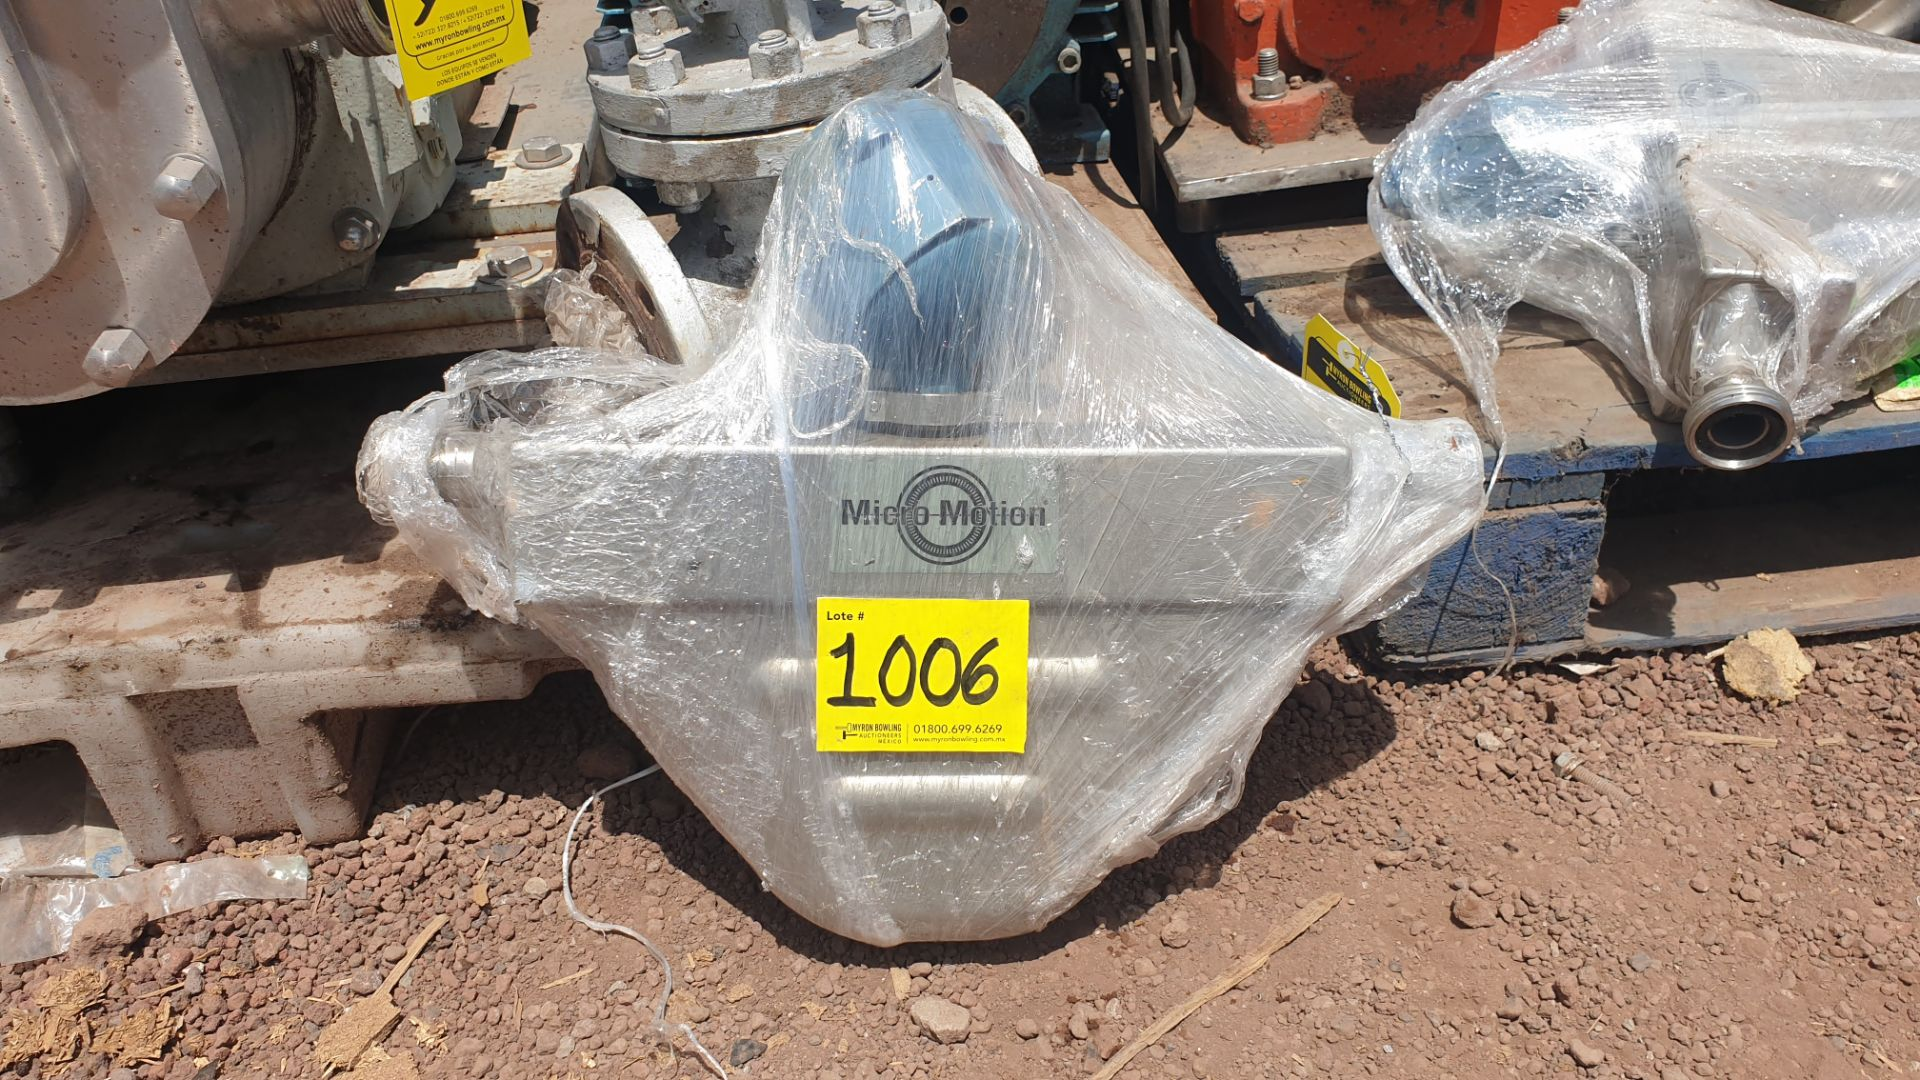 Micromotion Flow meter, model F100S230C2BMSZZZZ NS 14639520 2016 - Image 3 of 10